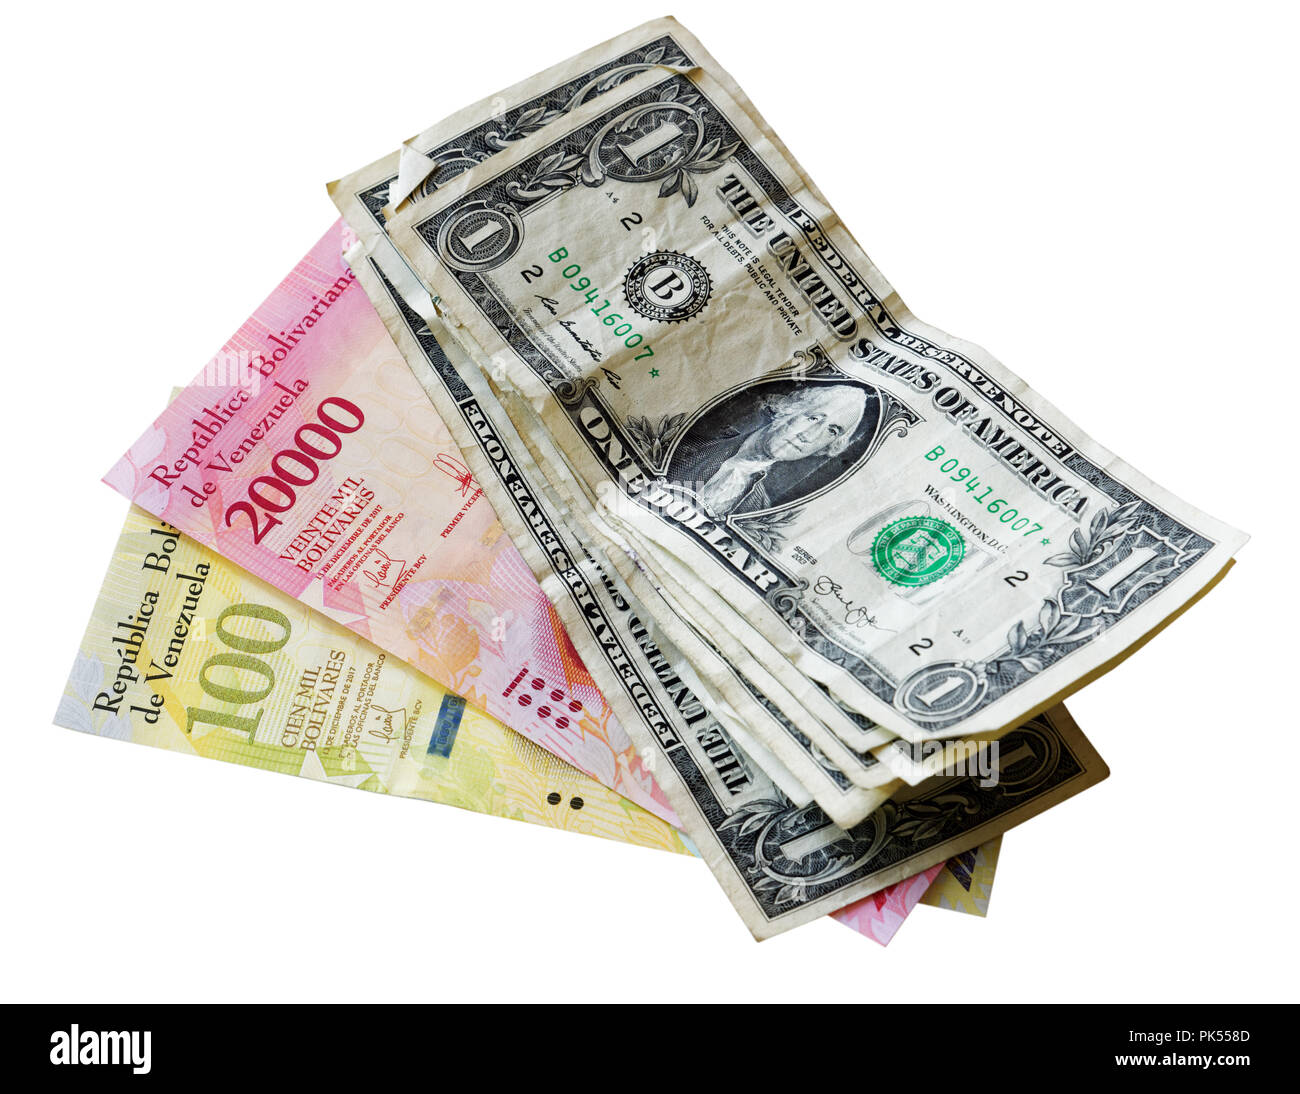 Venezuela hyperinflation Bolivar banknotes with US dollar bills - Stock Image